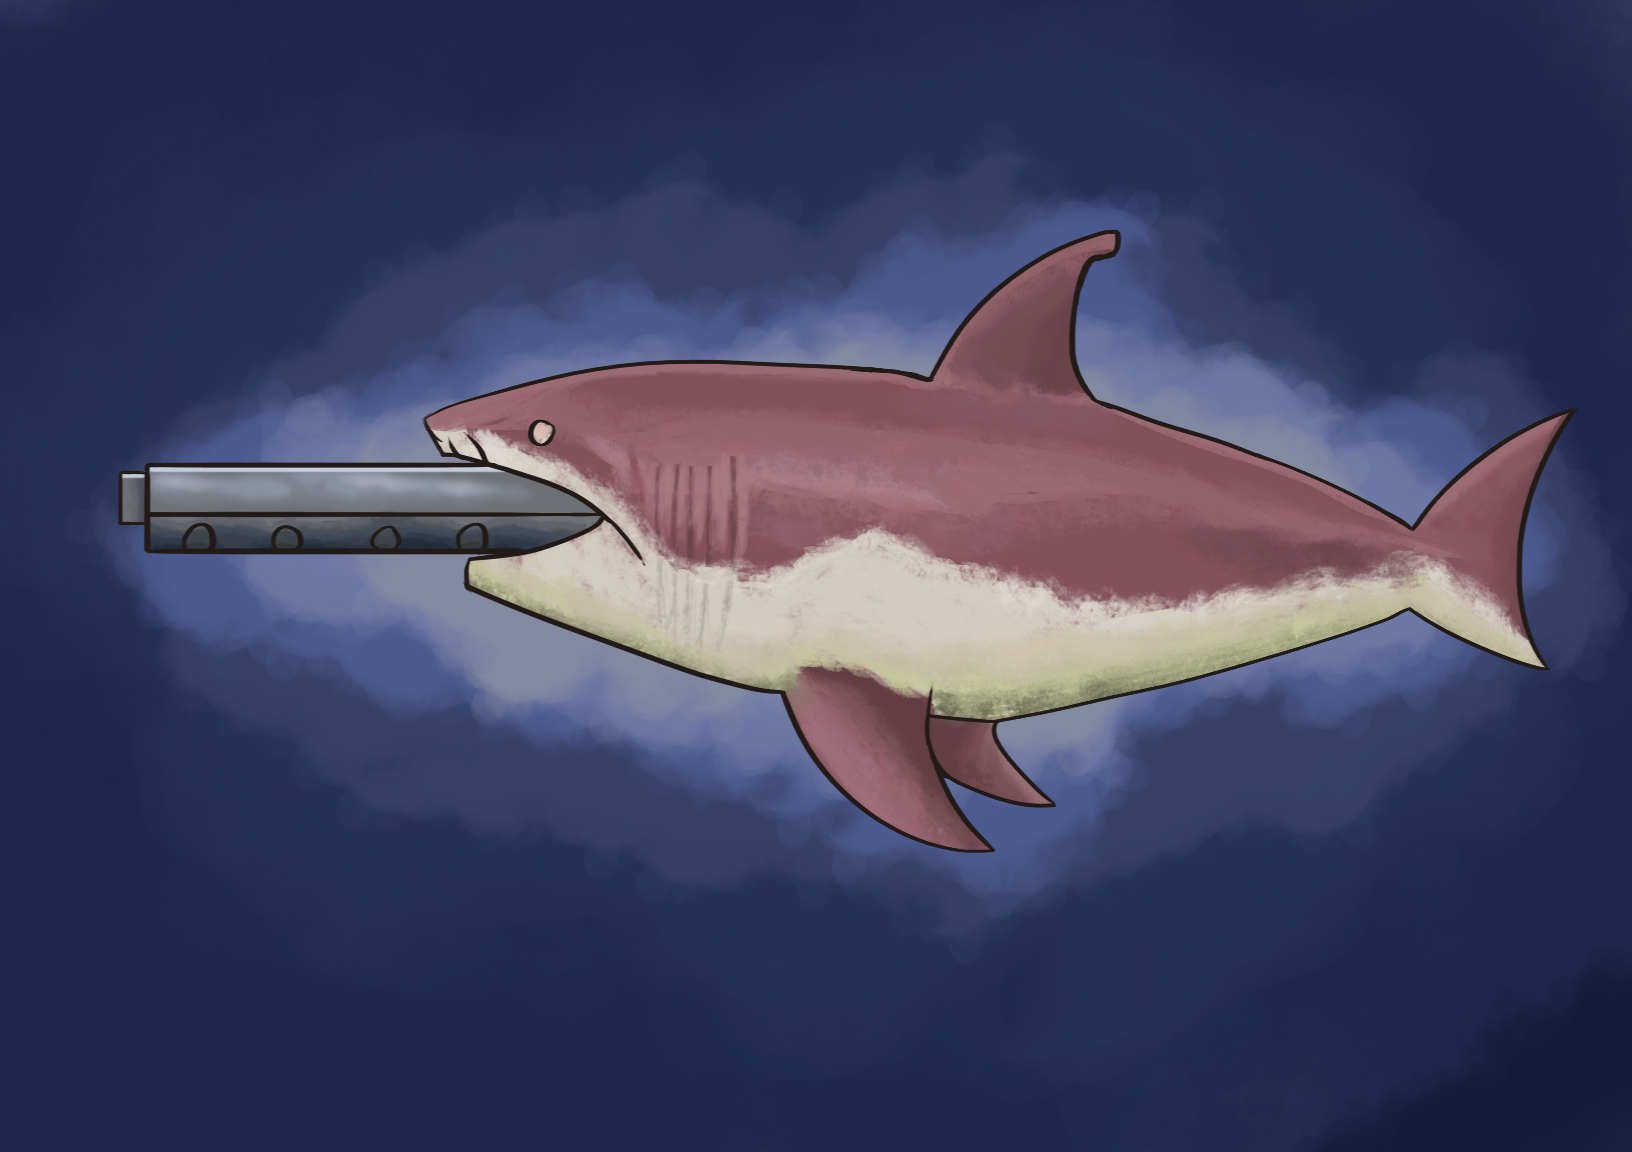 Terraria Mega Shark Painting By Coolkranx On Newgrounds